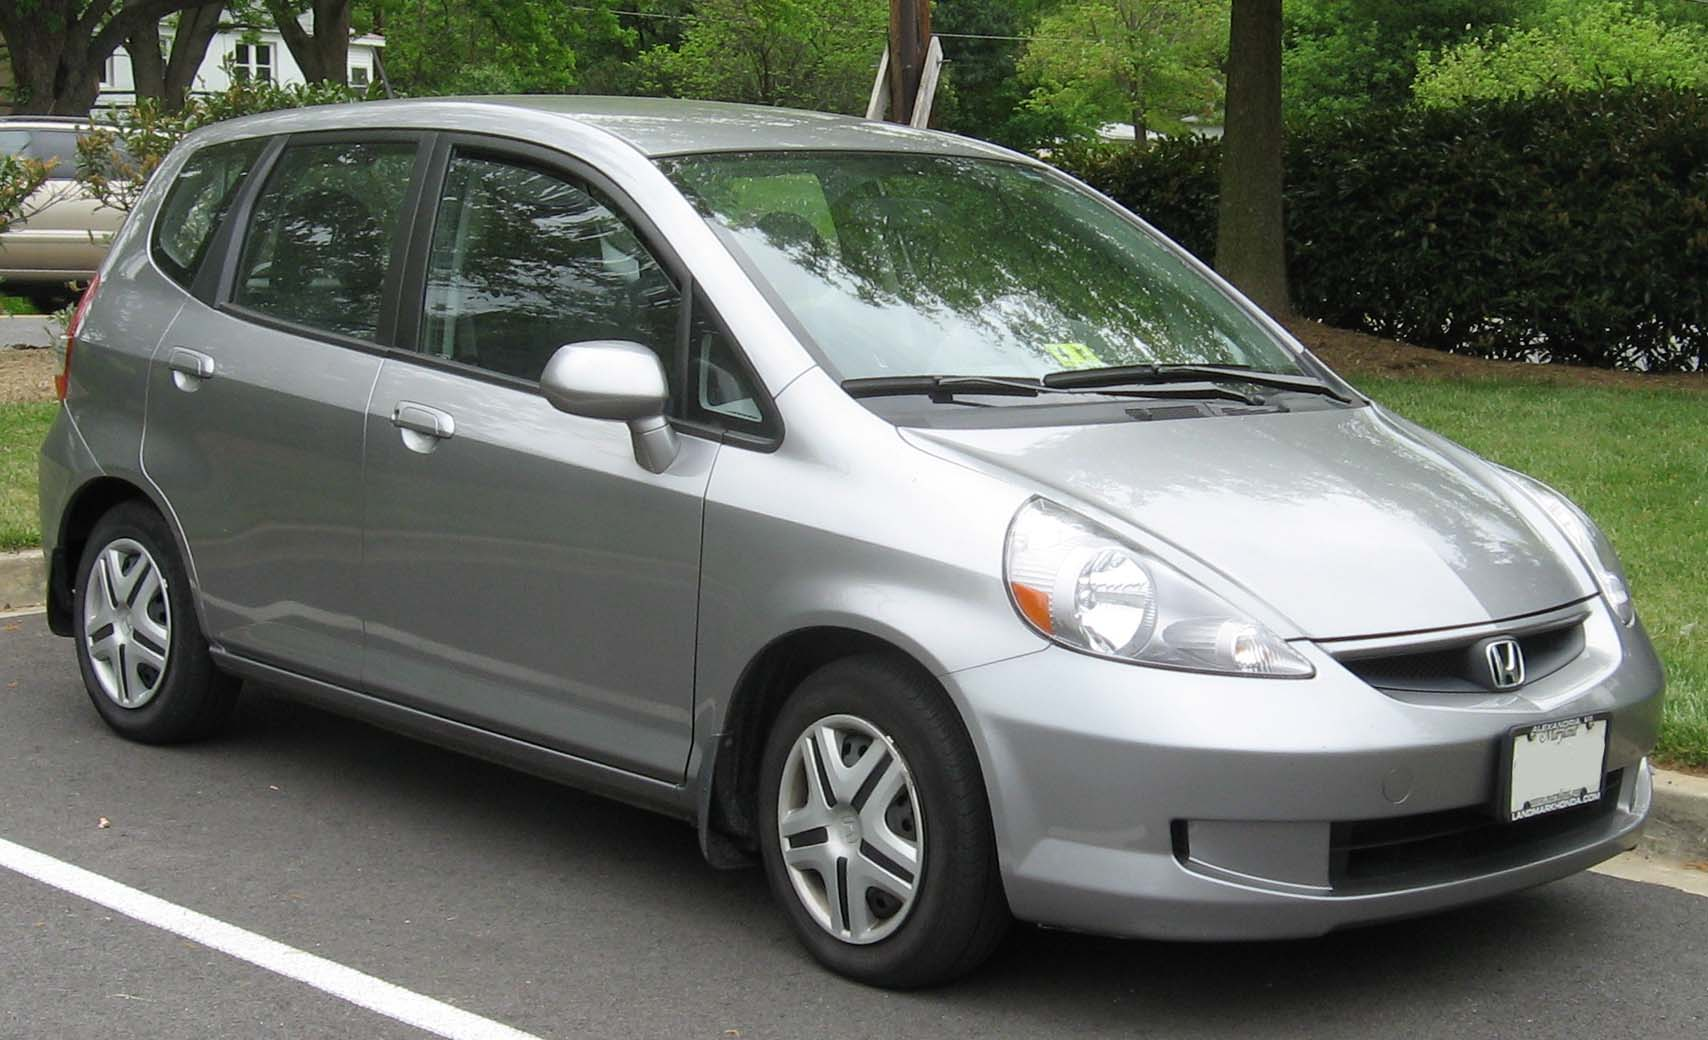 Honda Fit. I500cc Estimated to go 18KM on a liter of Petrol